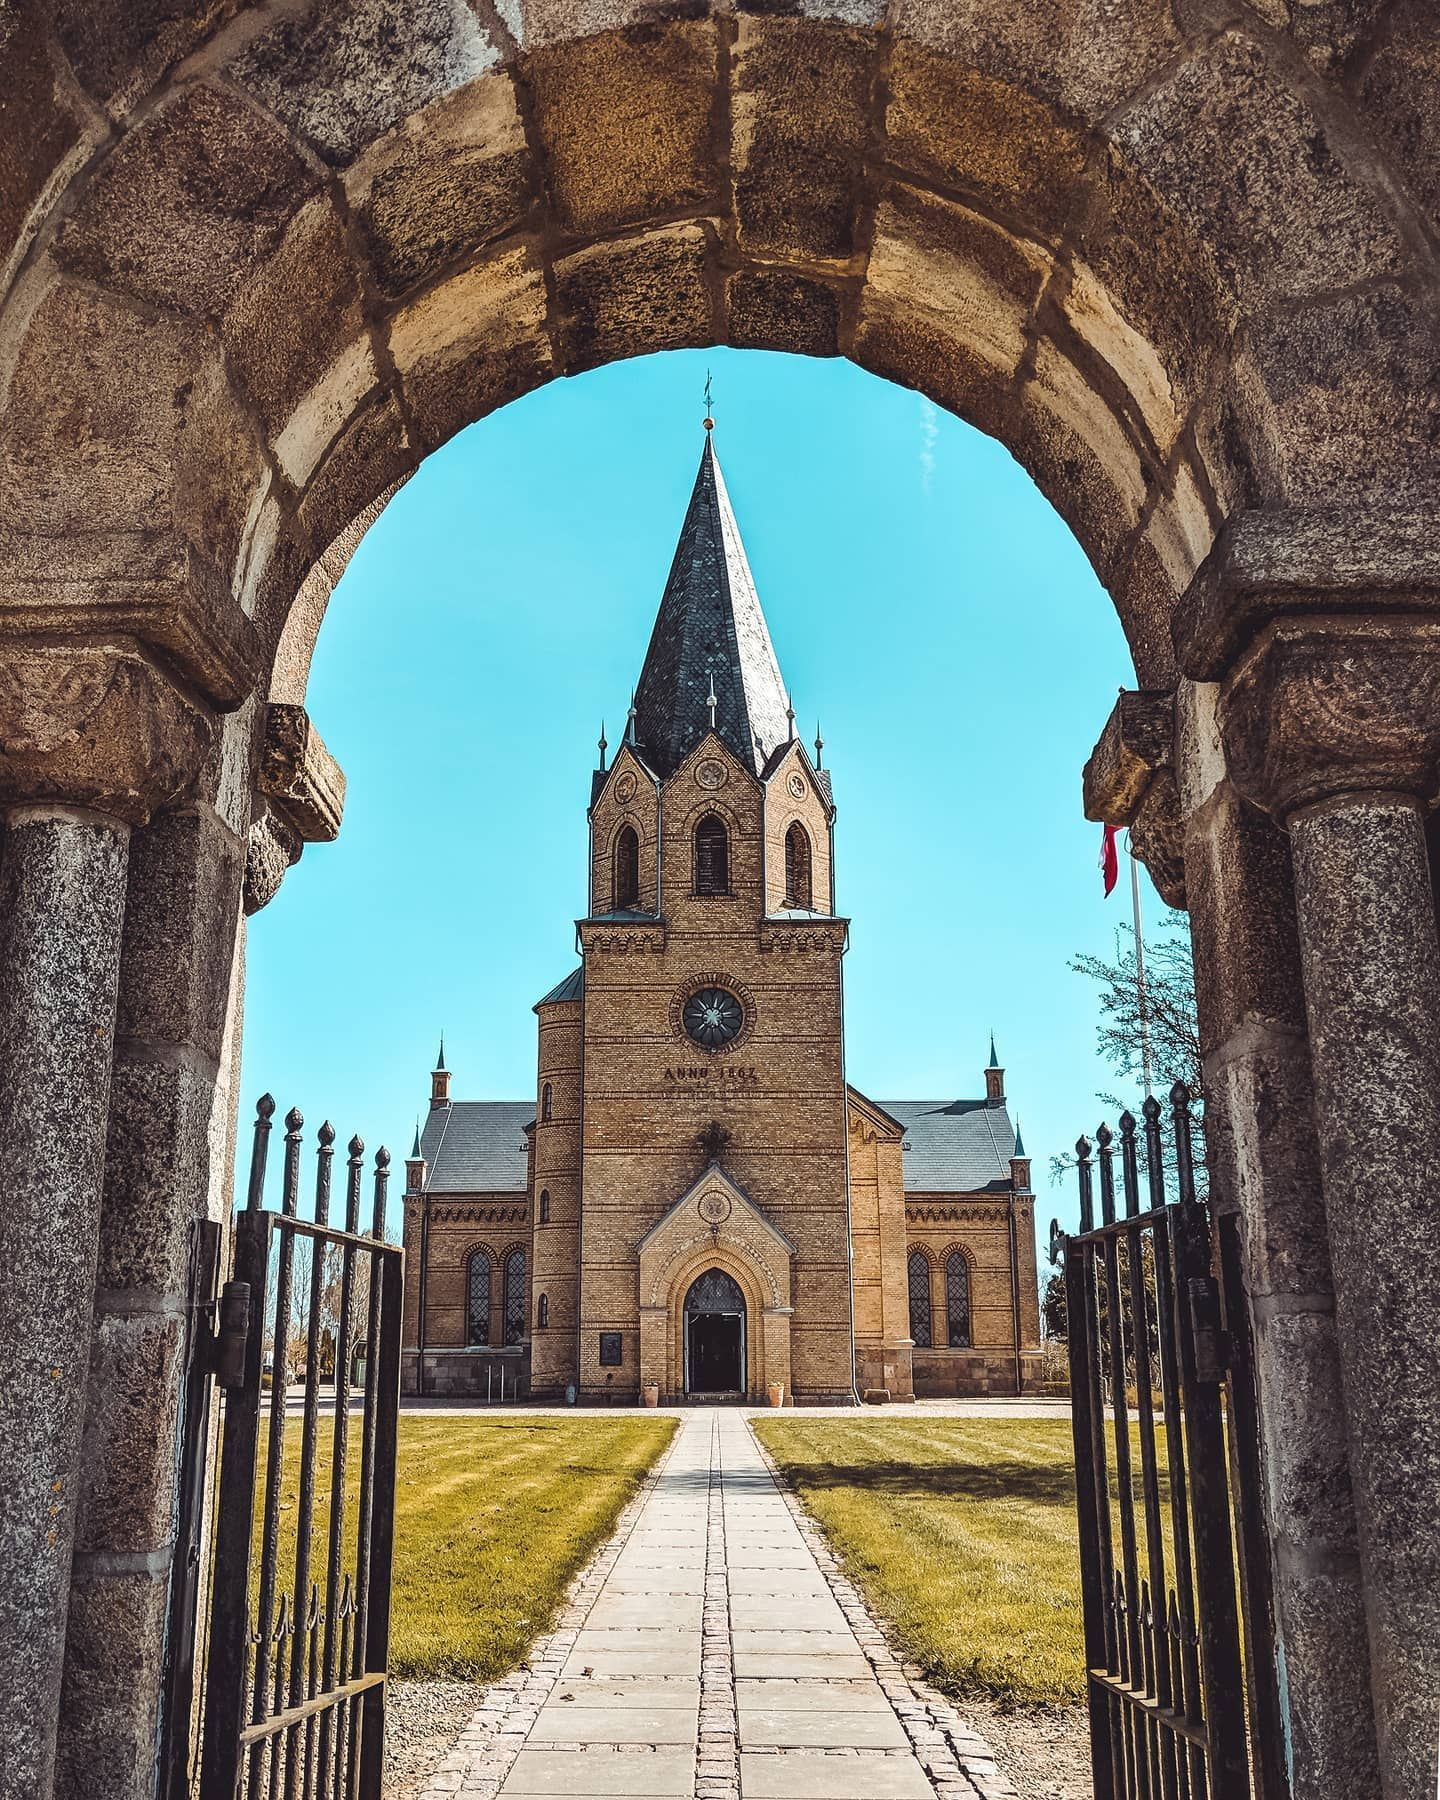 Framed...⁠ ----⁠ ⁠...church of Christiansfeld in Denmark.⁠ ⁠⁠ Here is the second shot from my little 3 part Christiansfeld series.  Nothing else to say 😉⁠ Have a great Sunday everyone!⁠ ⁠ ⁠Please support my work!⁠ ⁠ ⁠⁠🌟Save this post for later as inspiration🌟⁠ 💥Leave a like & a comment 💥⁠ 🗣️Recommend my profile to your friends🗣️⁠ ⁠ -------------------⁠ ⁠ helgaandheiniontour.com⁠ ⁠ -------------------⁠ ⁠ ✖Follow @helga.and.heini.on.tour✖⁣⠀⠀⁠ ✖Follow @igershamburg ✖⁣⠀⁠ ✖Follow @judijumper ✖